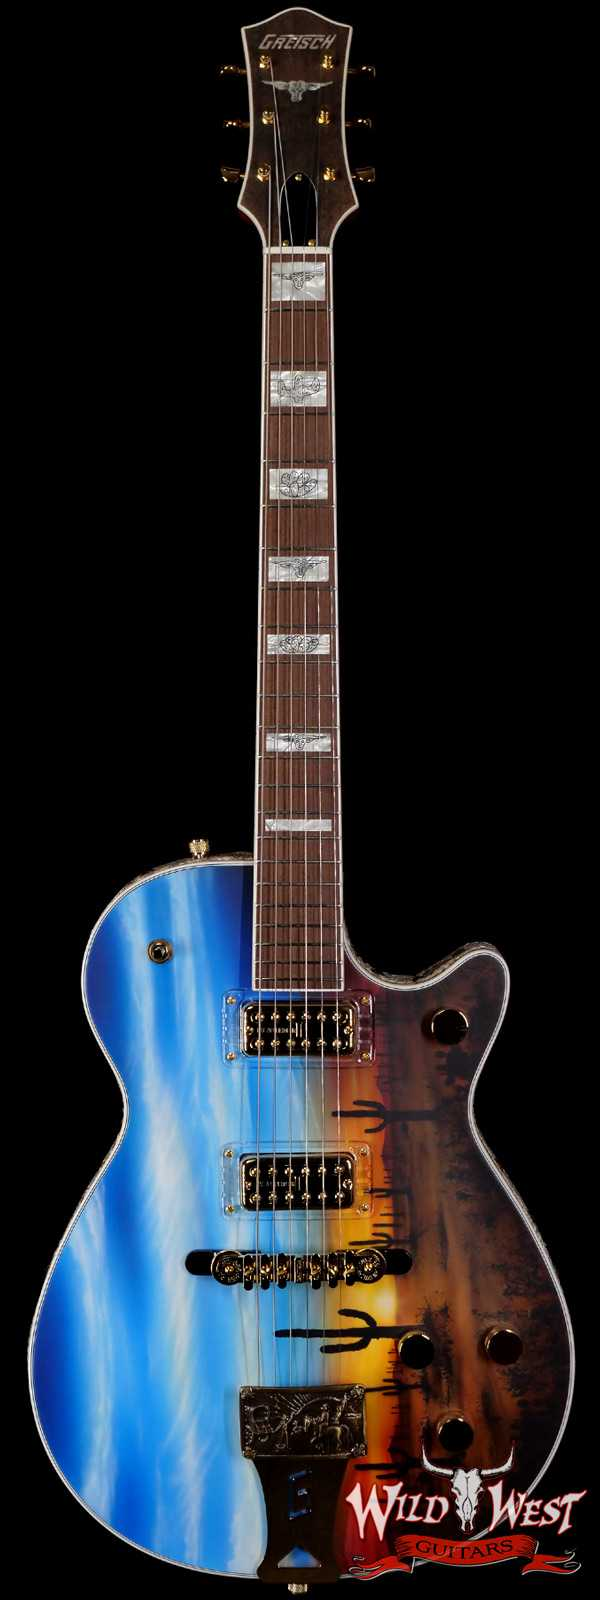 Gretsch USA Custom Shop Stephen Stern Masterbuilt G6130 with Filter Tron Pickups Sunset Roundup